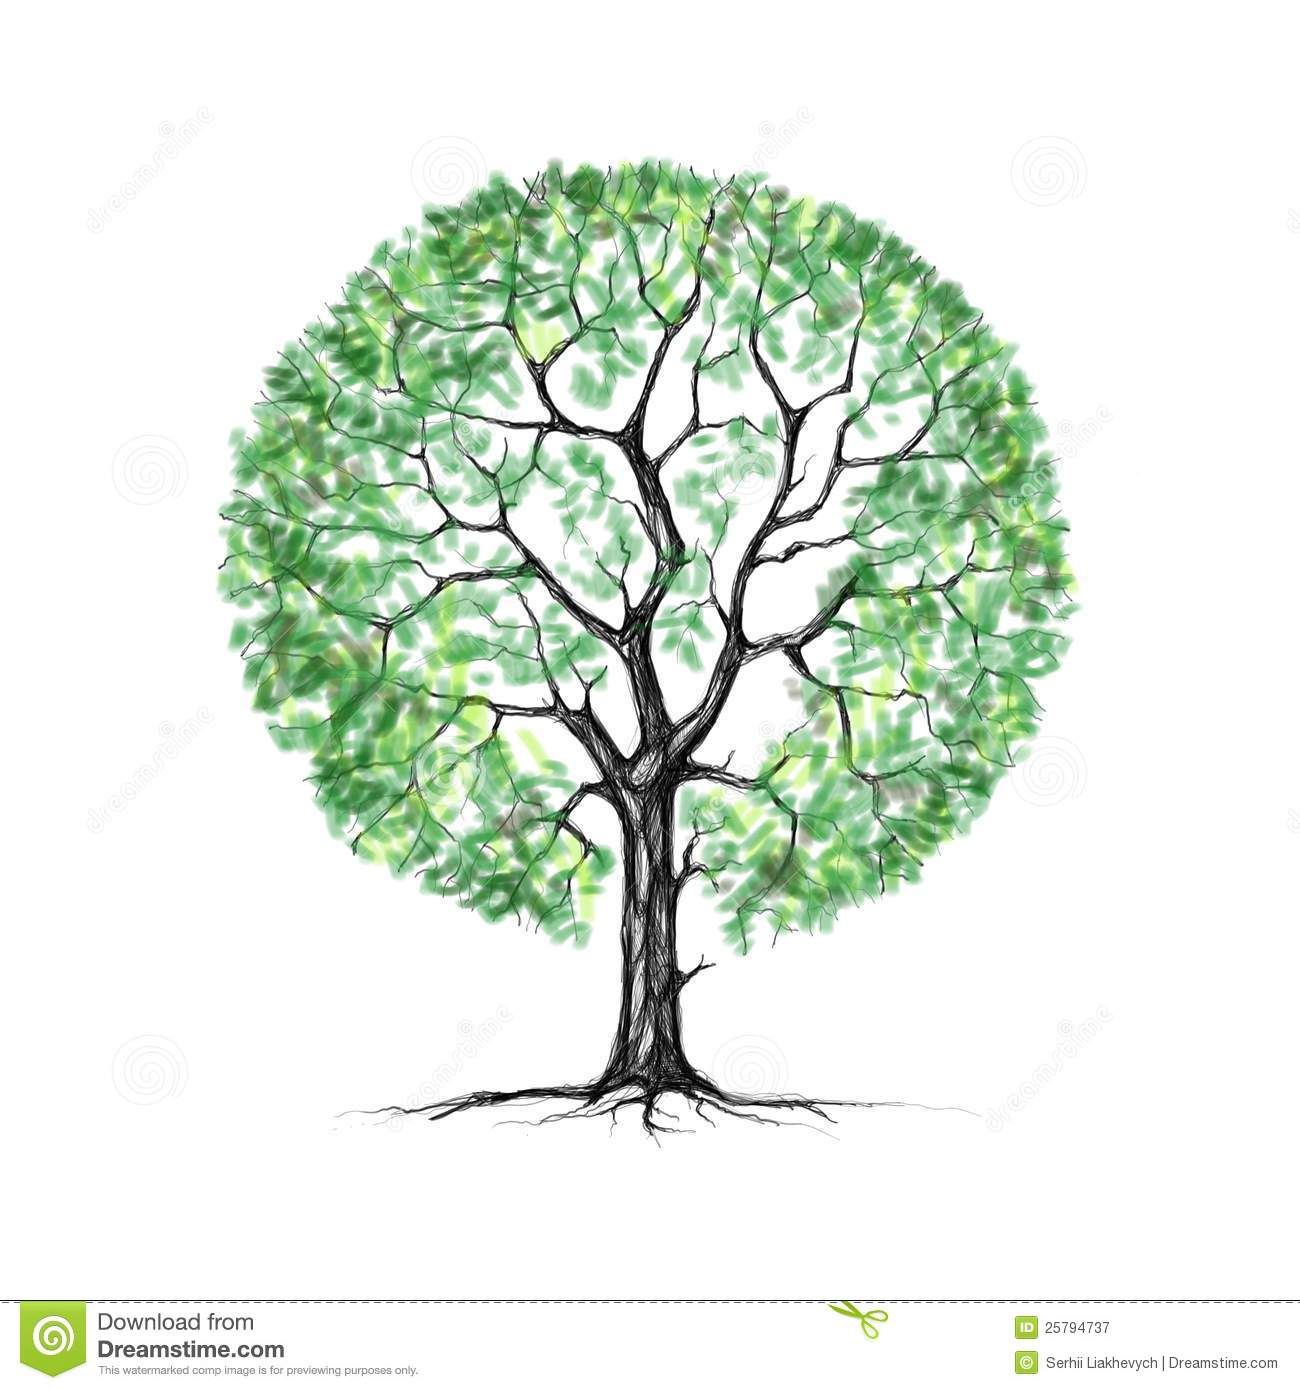 summer tree drawing - Google-Suche | trees, trees, & MORE TREES ...